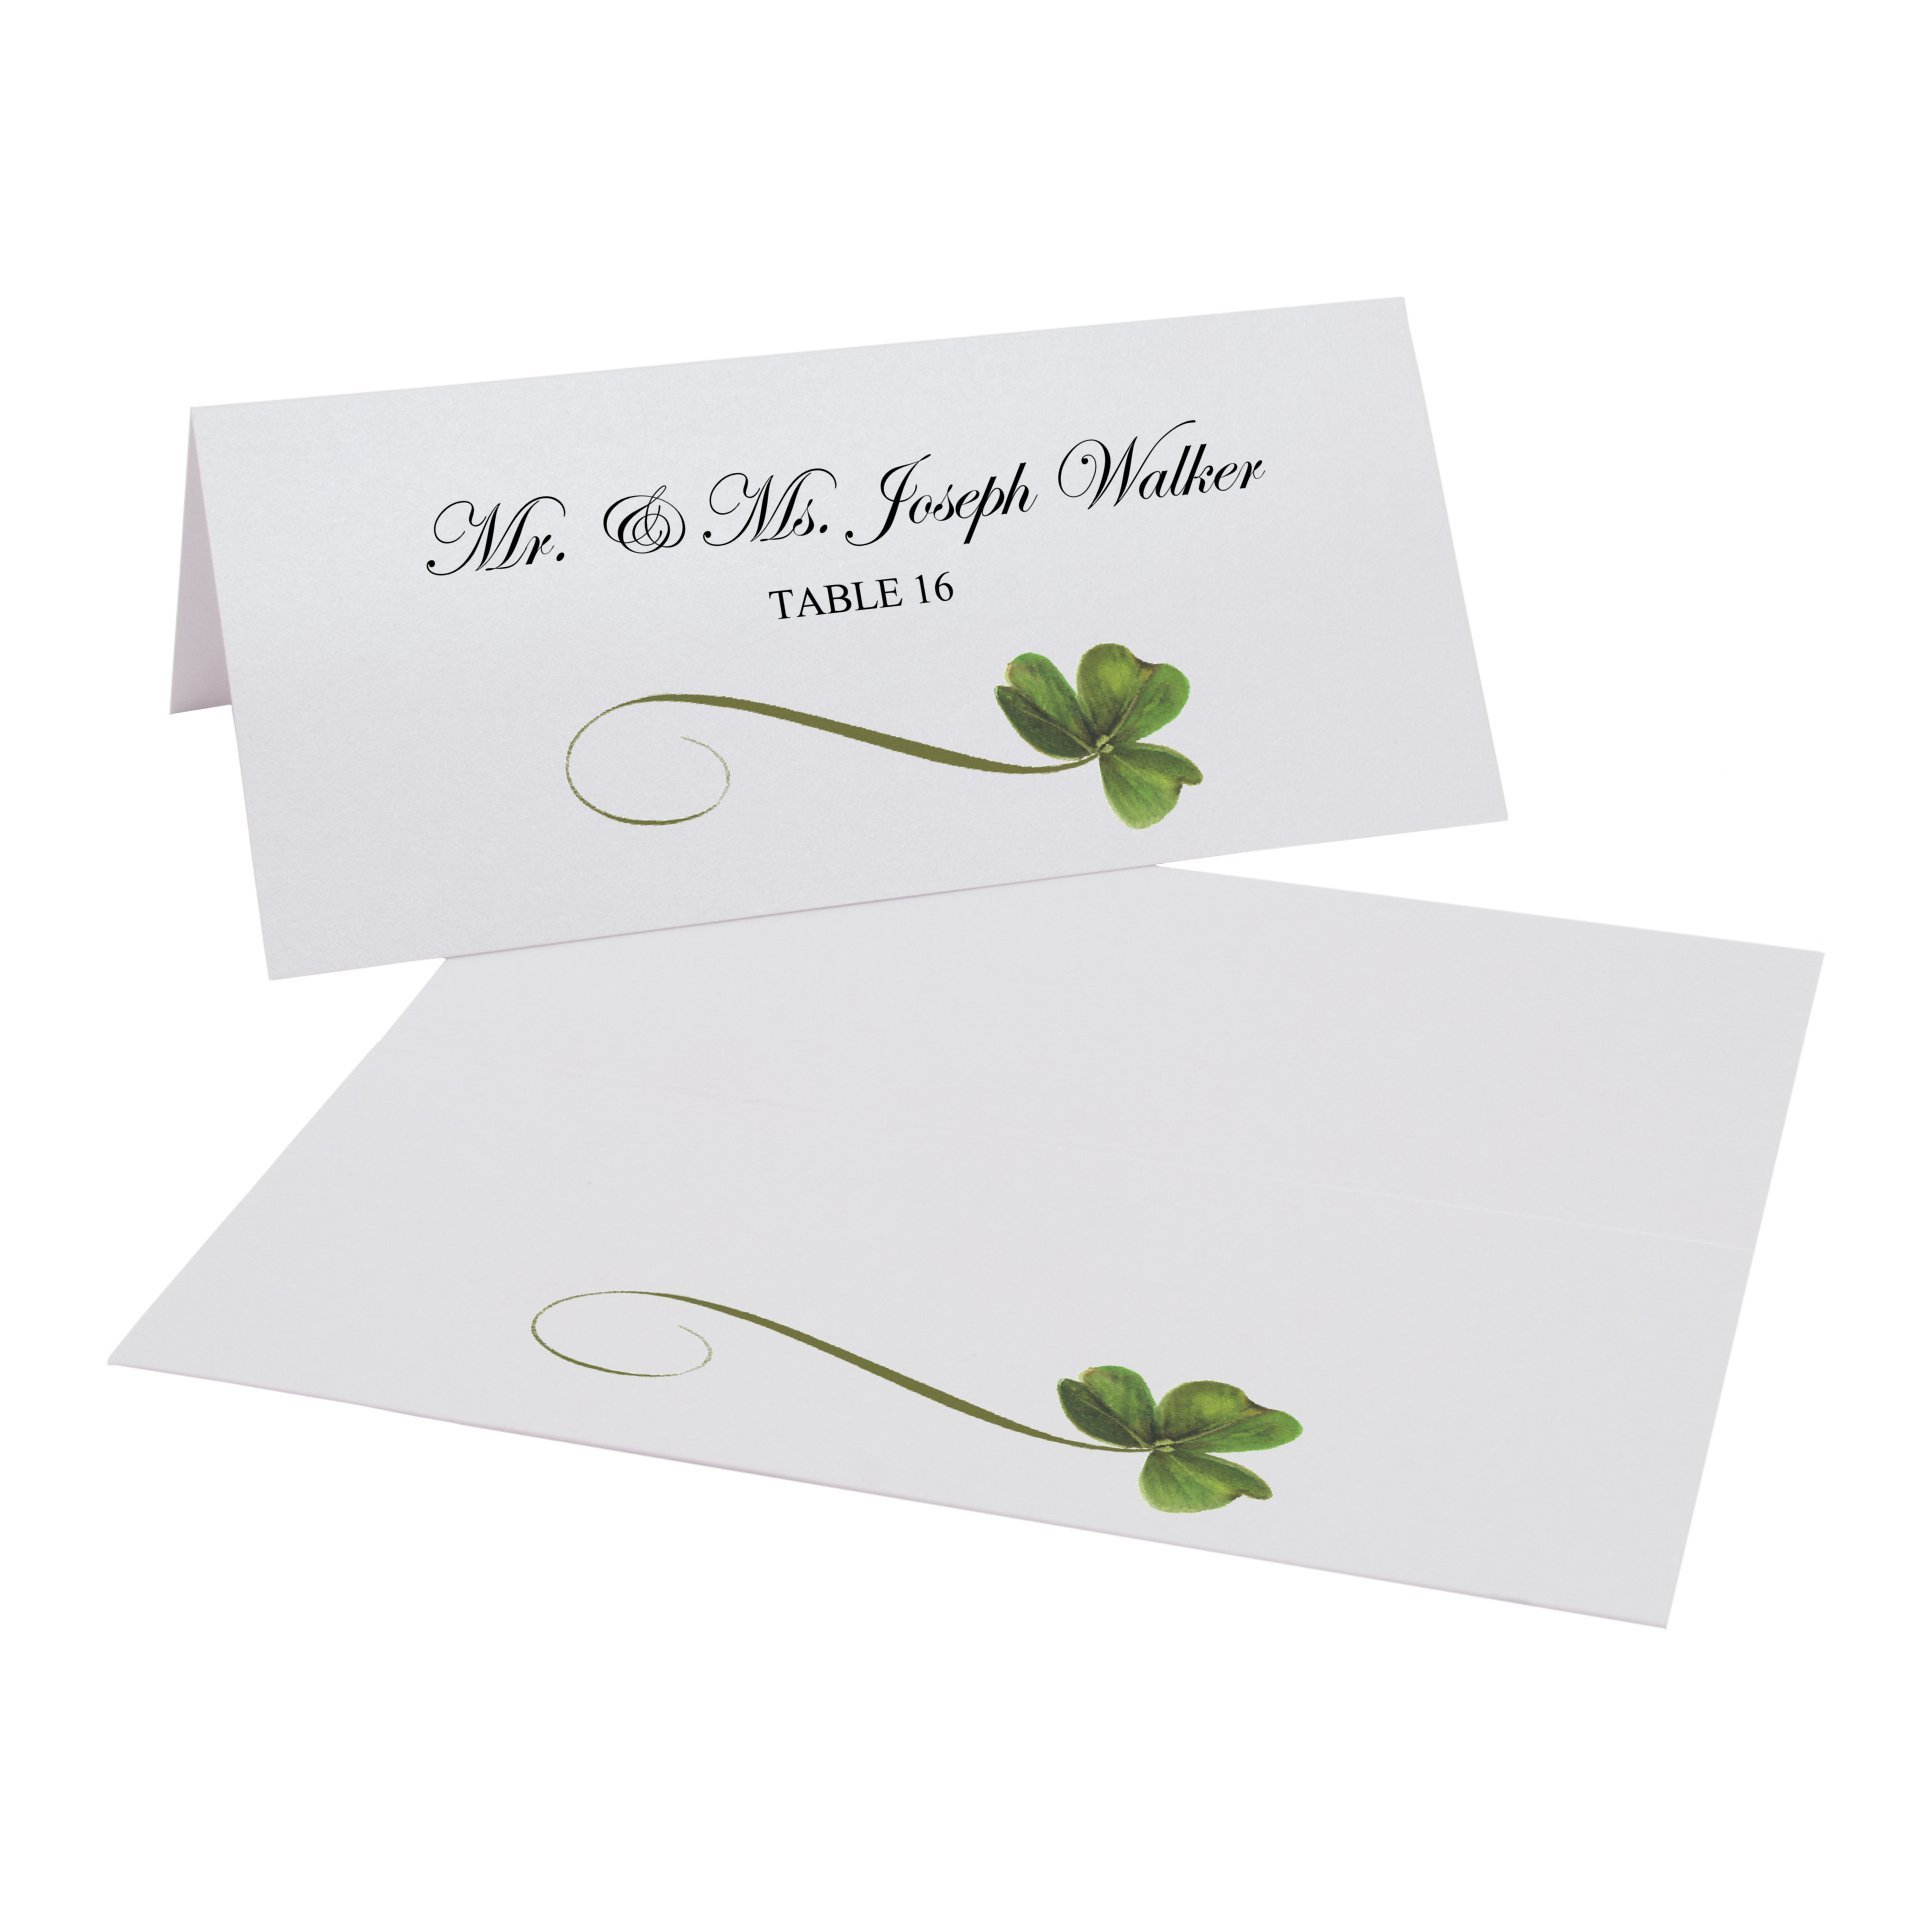 Shamrock Easy Print Place Cards, Pearl White, Set of 400 (100 Sheets) by Documents and Designs